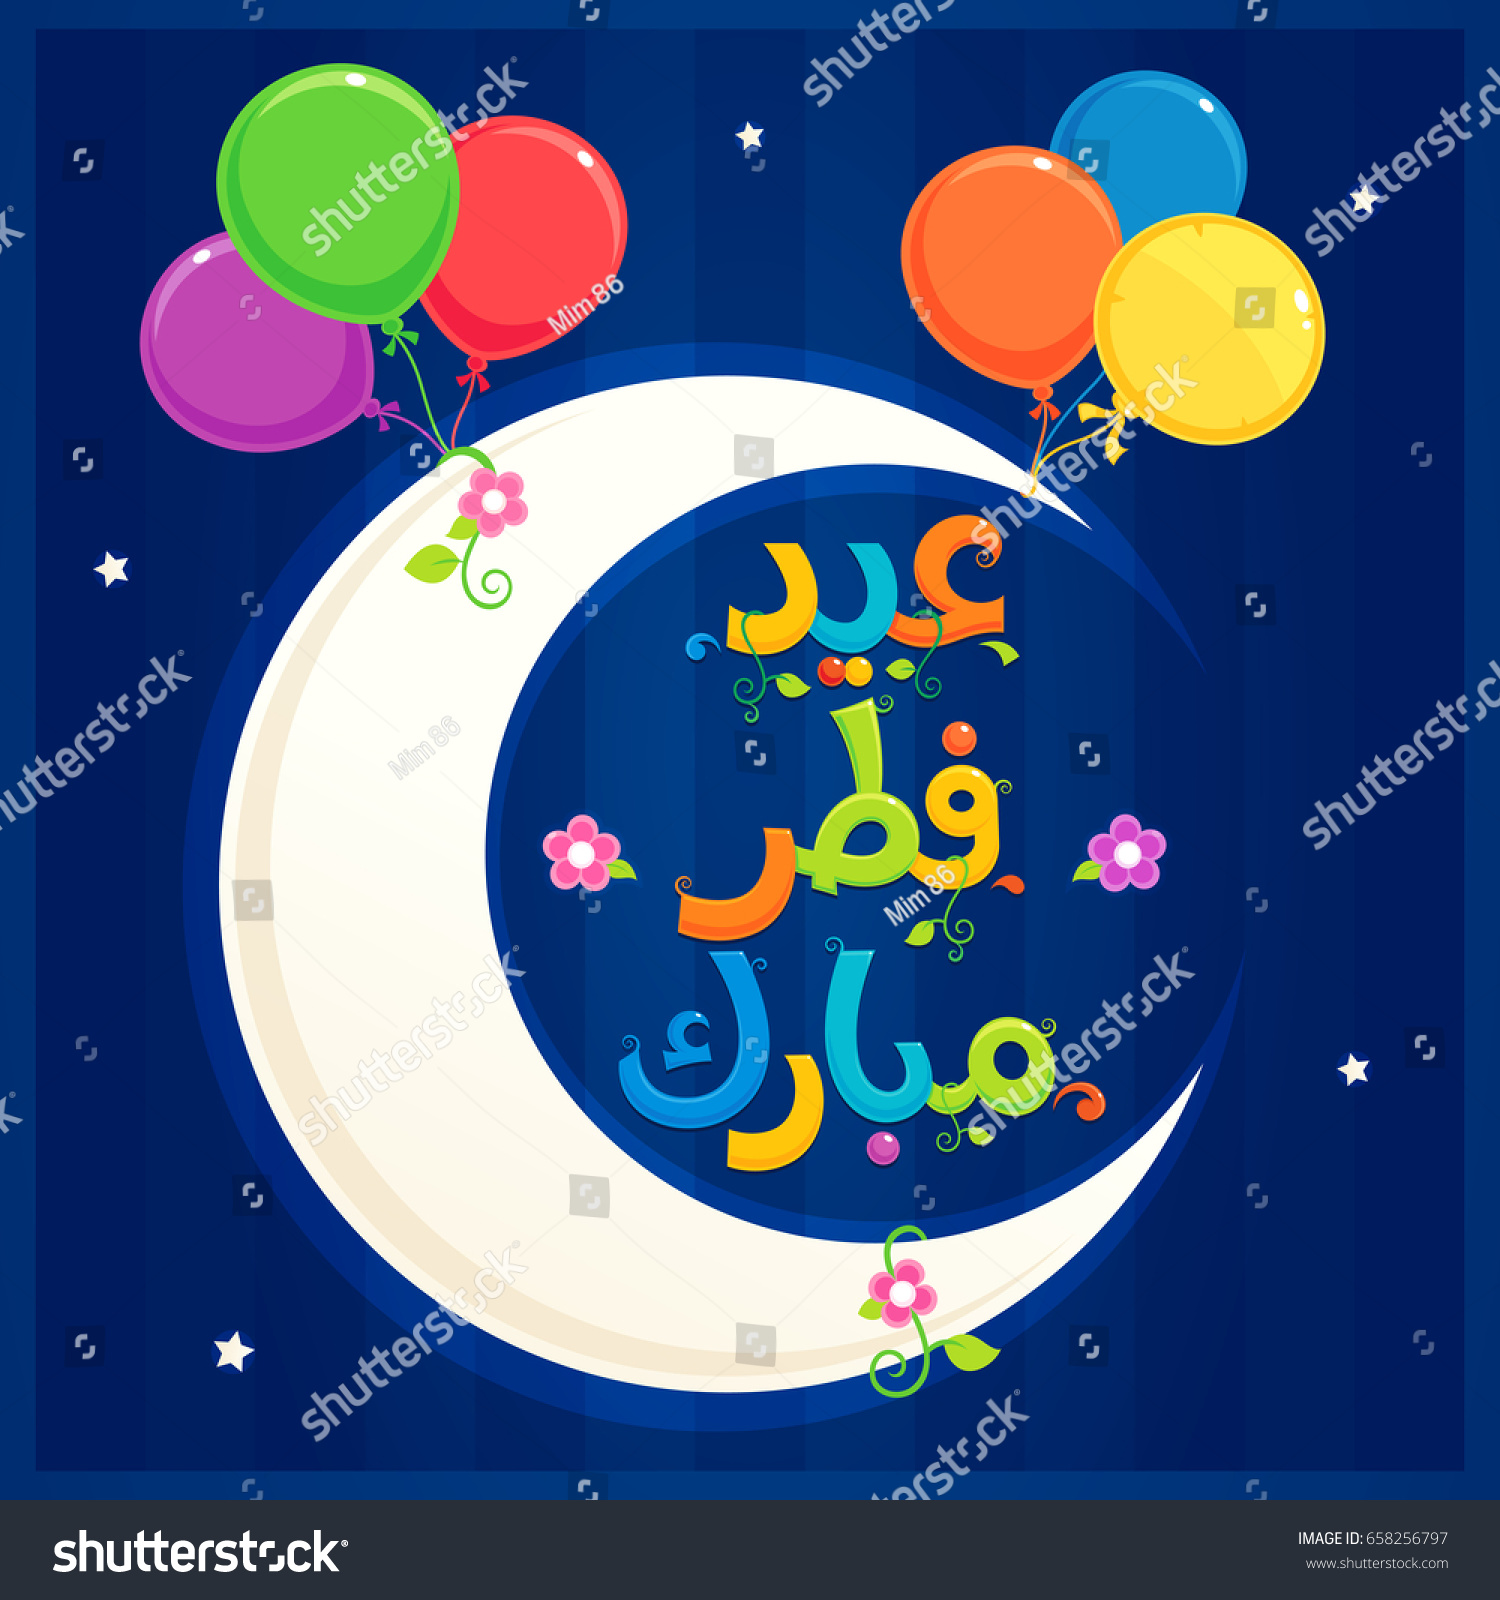 Eid al fitr greetings in arabic images greeting card examples arabic text blessed eid al fitr stock vector 658256797 shutterstock arabic text blessed eid al fitr kristyandbryce Images